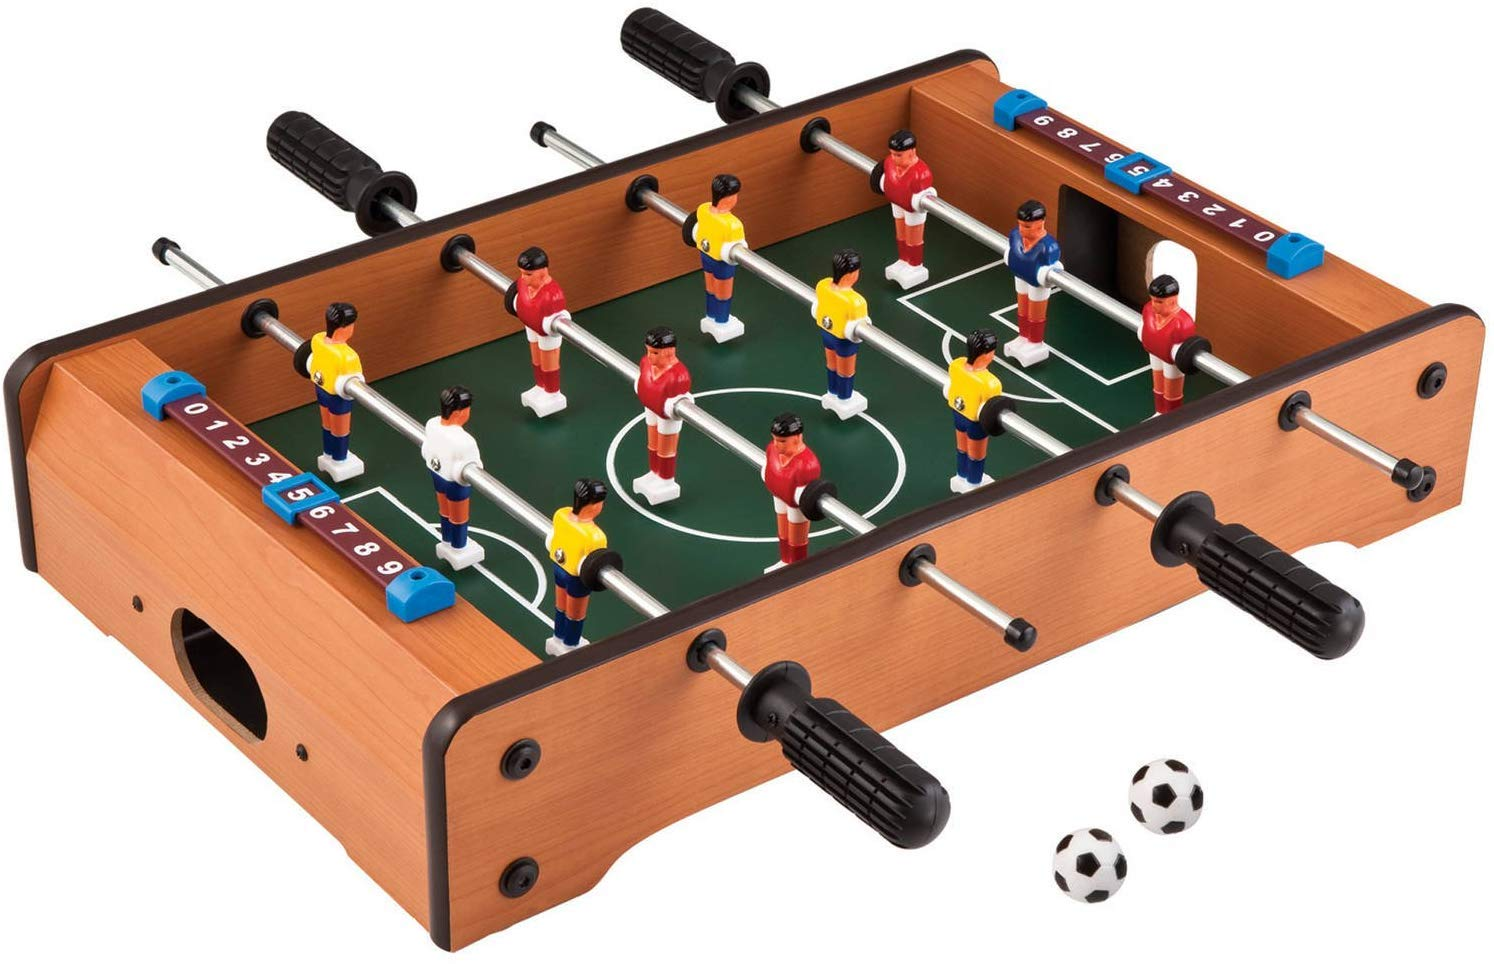 TABU TOYS WORLD Mid-Sized Foosball, Mini Football, Table Soccer Game, 4 Rods, 20 Inches (50 Cms)